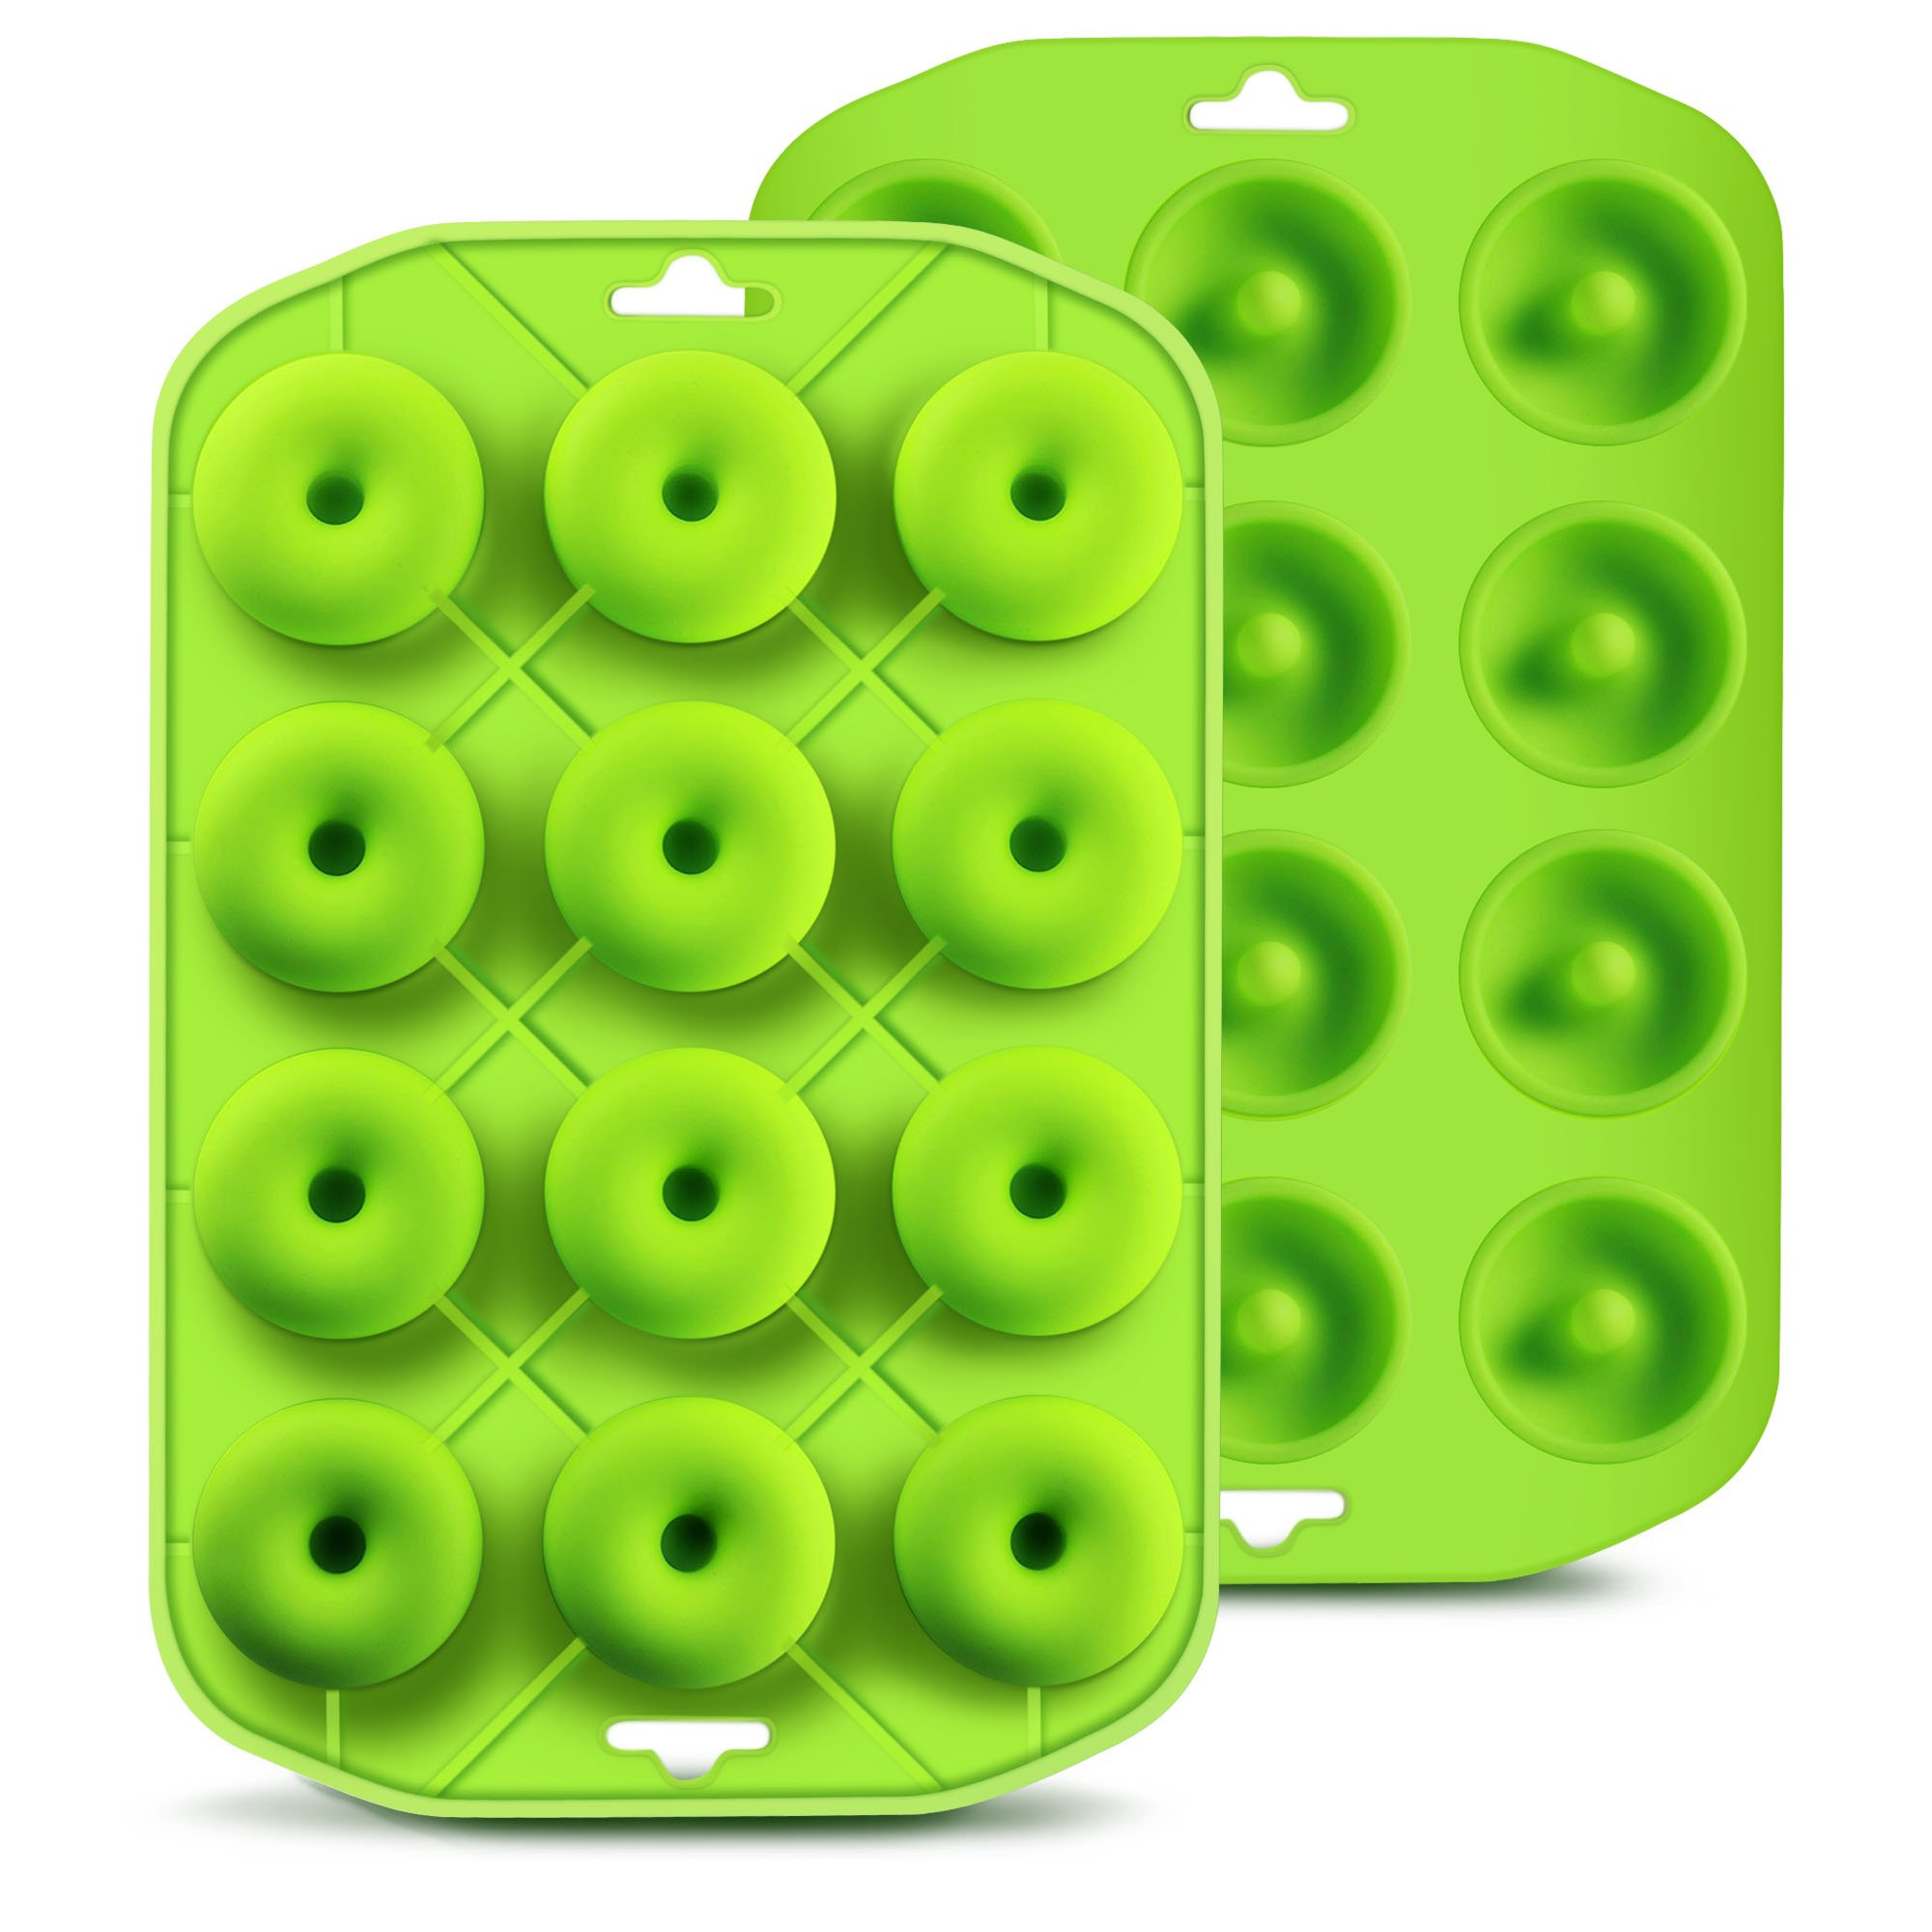 Silicone Mini Donut Maker Baking Cupidove Muffin Pan Tray 12 Holes Pure Food Grad Green makes12 Full Size Donuts, BPA Free, FDA & German LFGB Approved